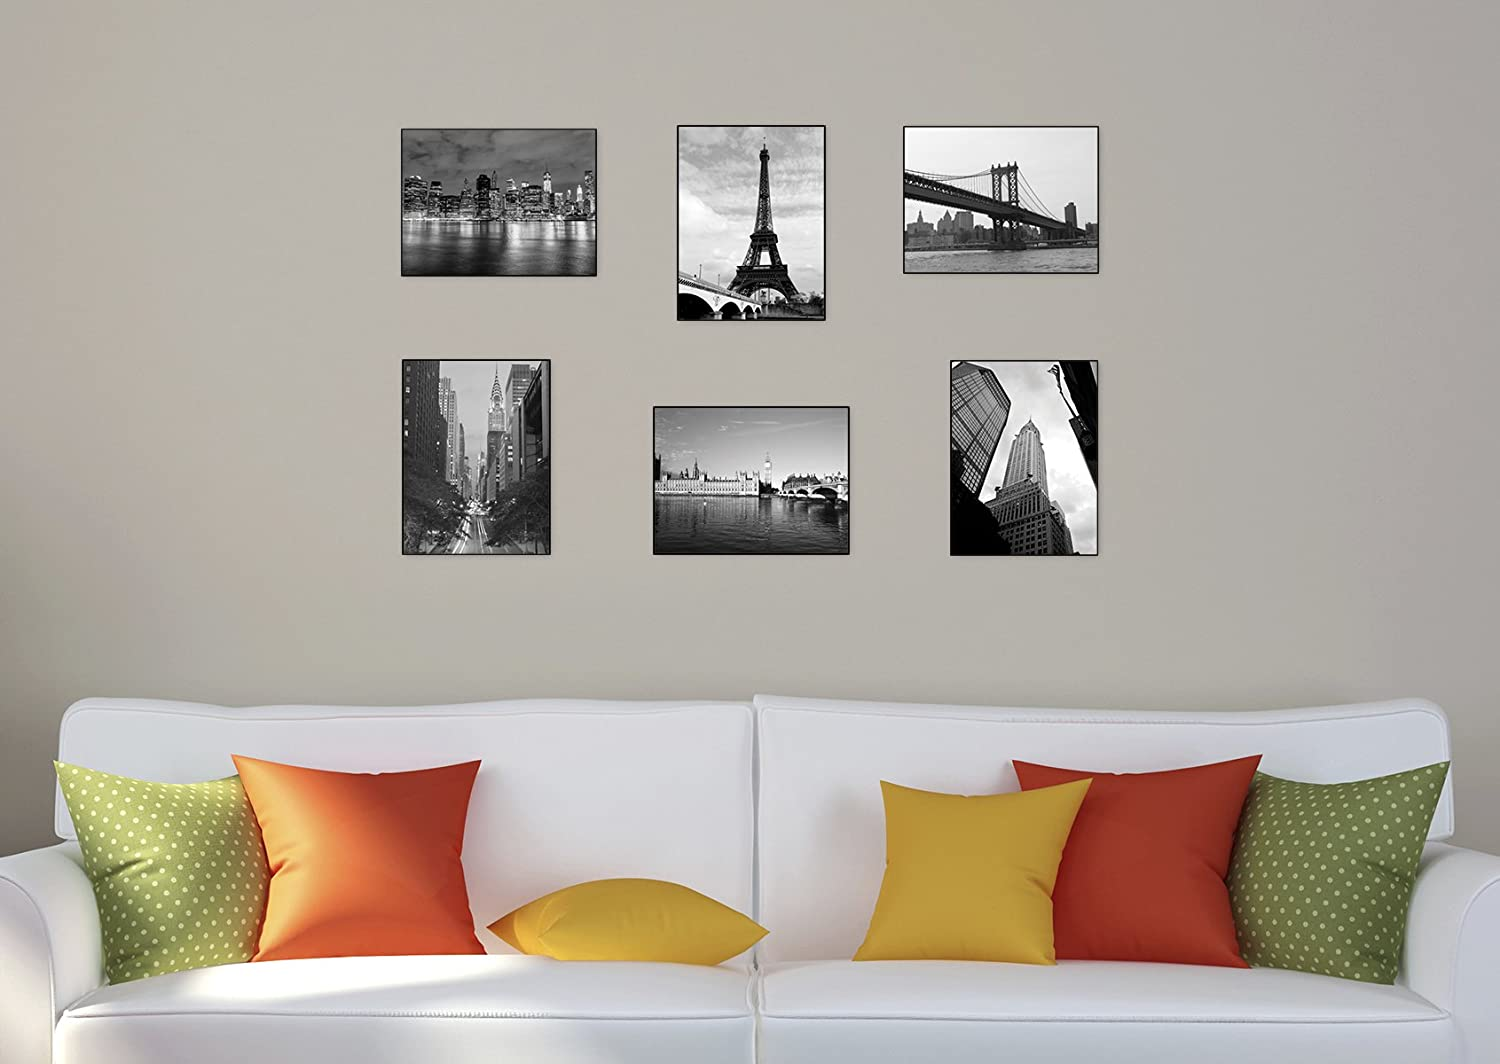 MCS Frame 3.5 by 5-Inch Black Format 12-Pack 3.5 x 5 Inch